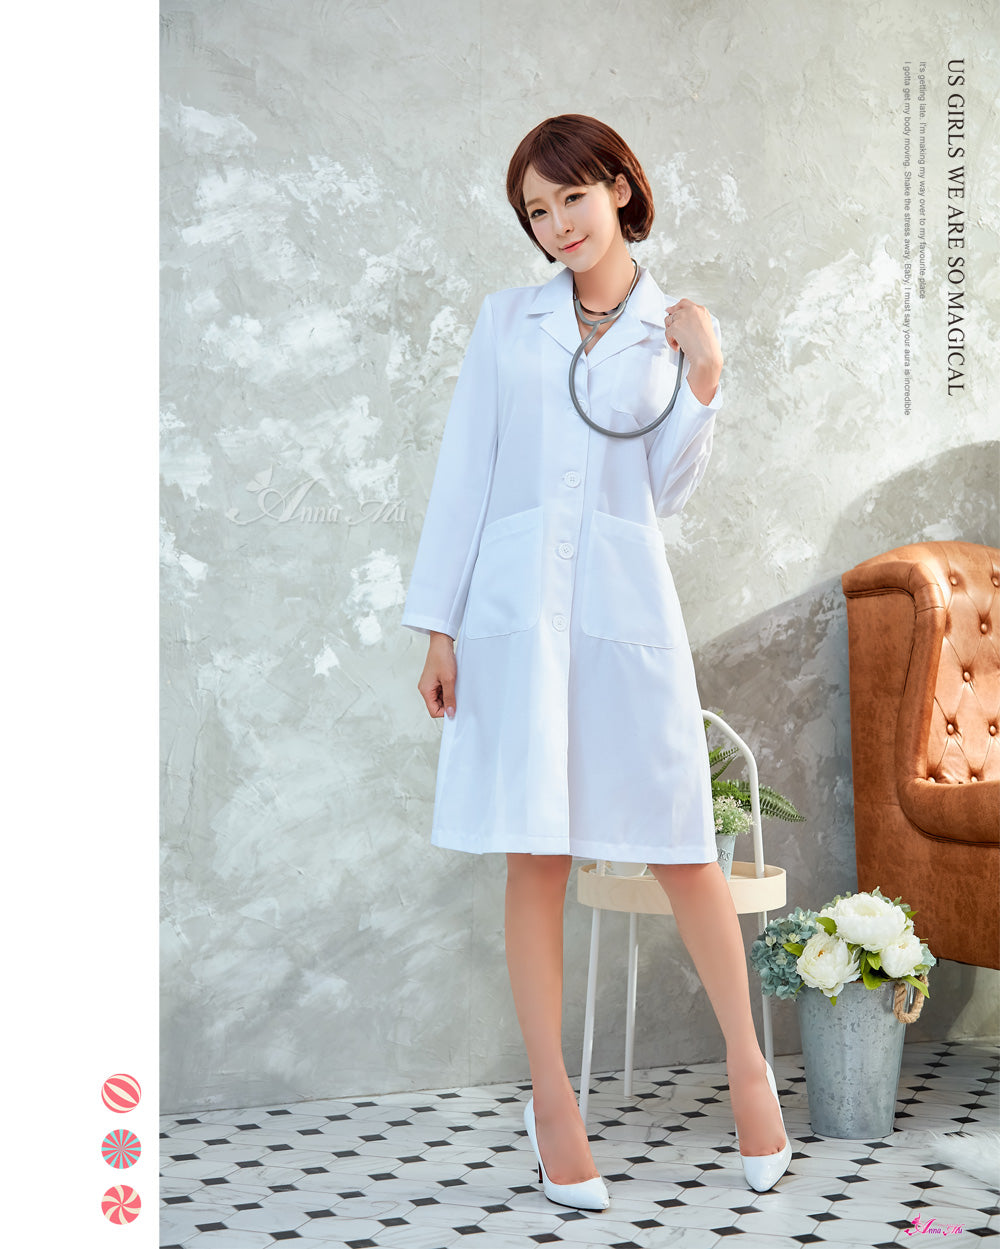 Lingeriecats Halloween Sexy Doctor Lab Coat Professional White Workwear Scrub Uniforms Medical Work Costume - LingerieCats